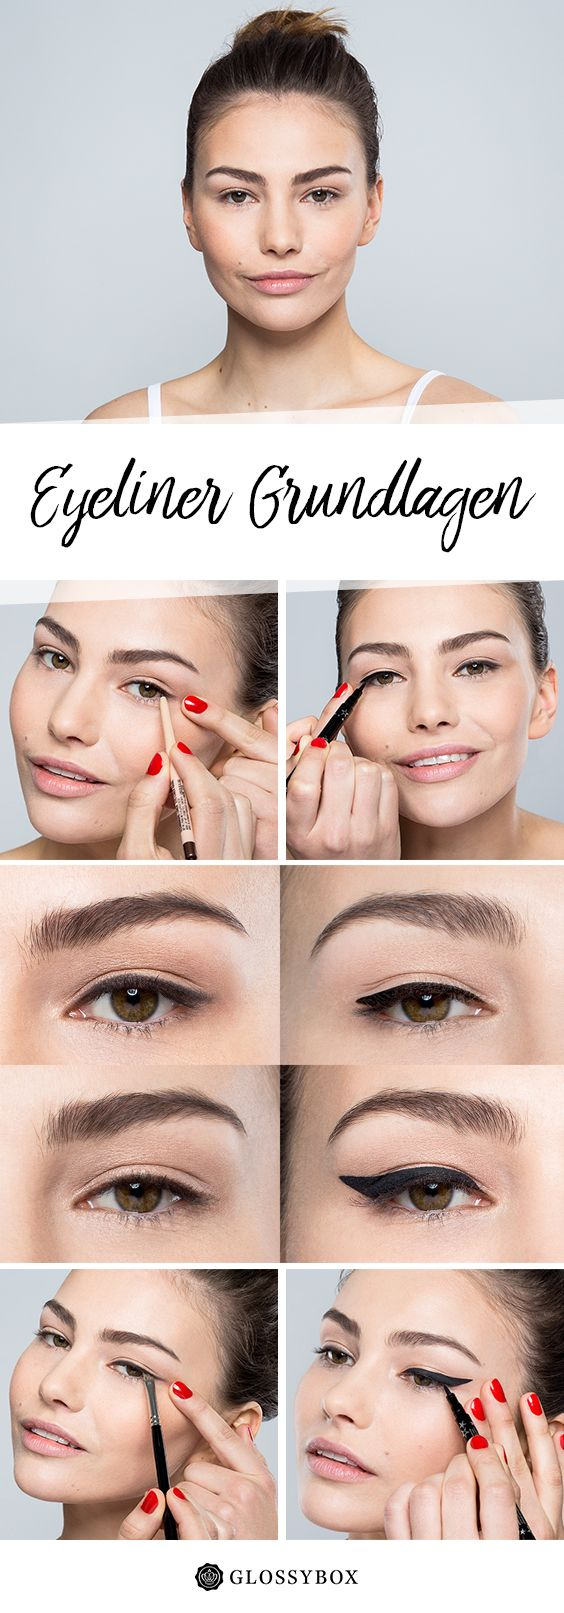 Top-Gesicht Make-up-Grundlagen